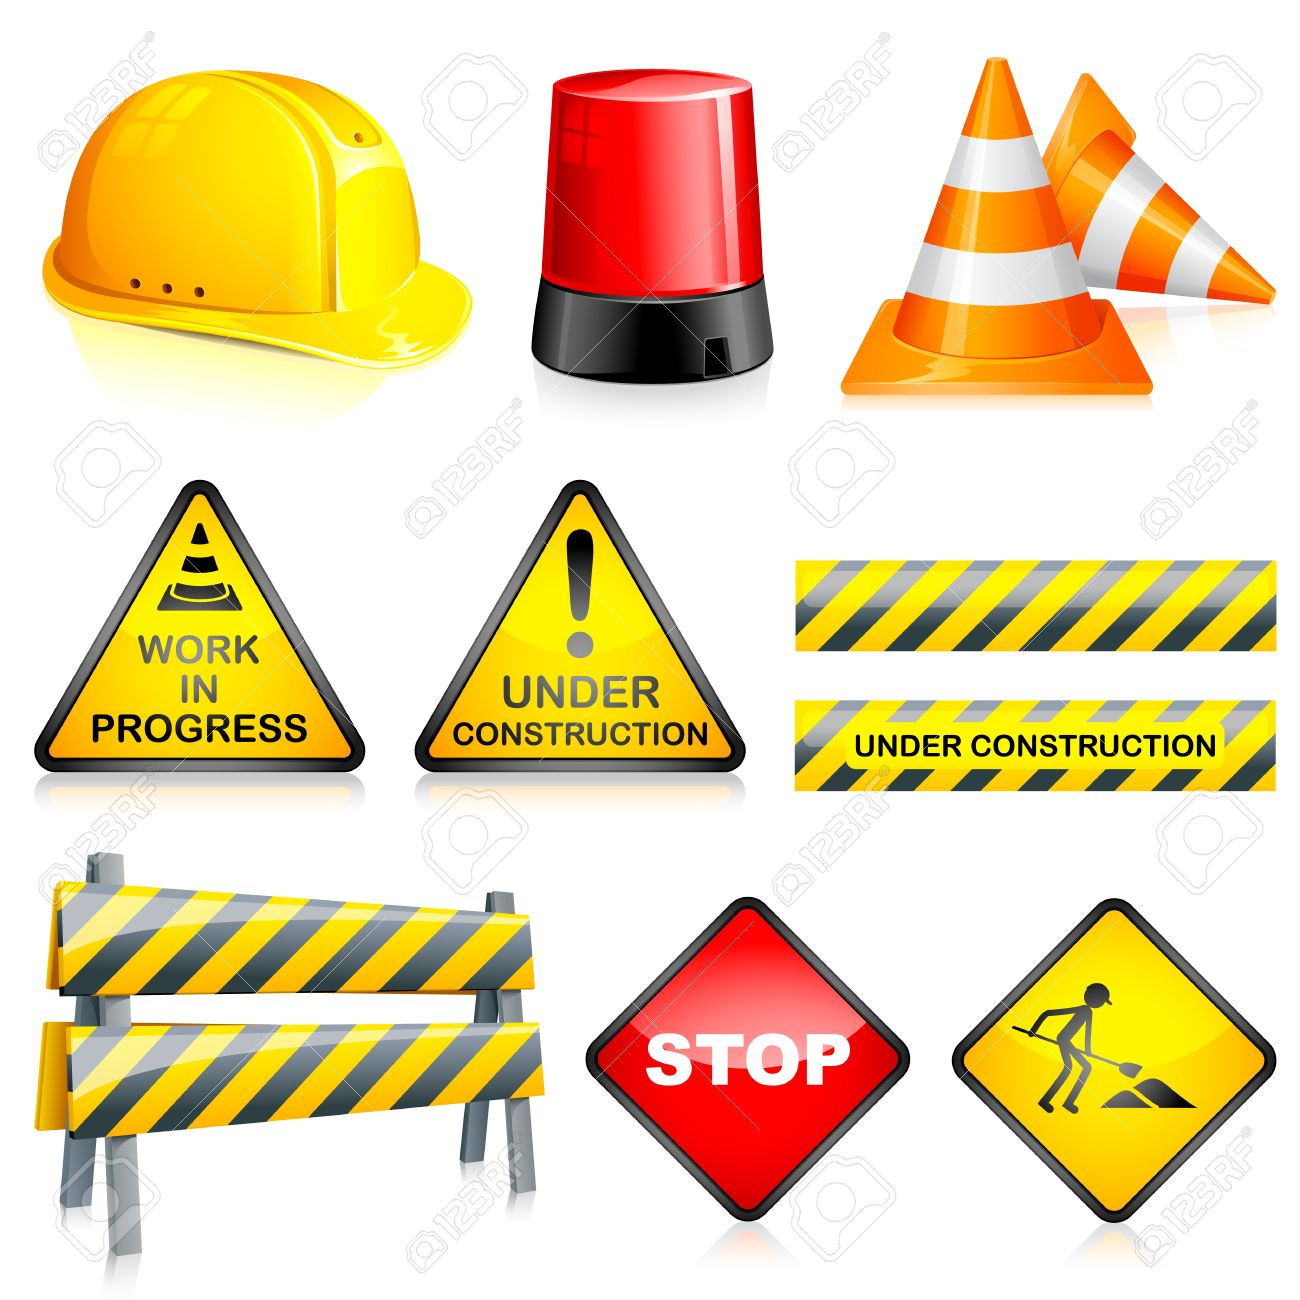 Under Construction Lamp Stock Photos & Pictures. Royalty Free.